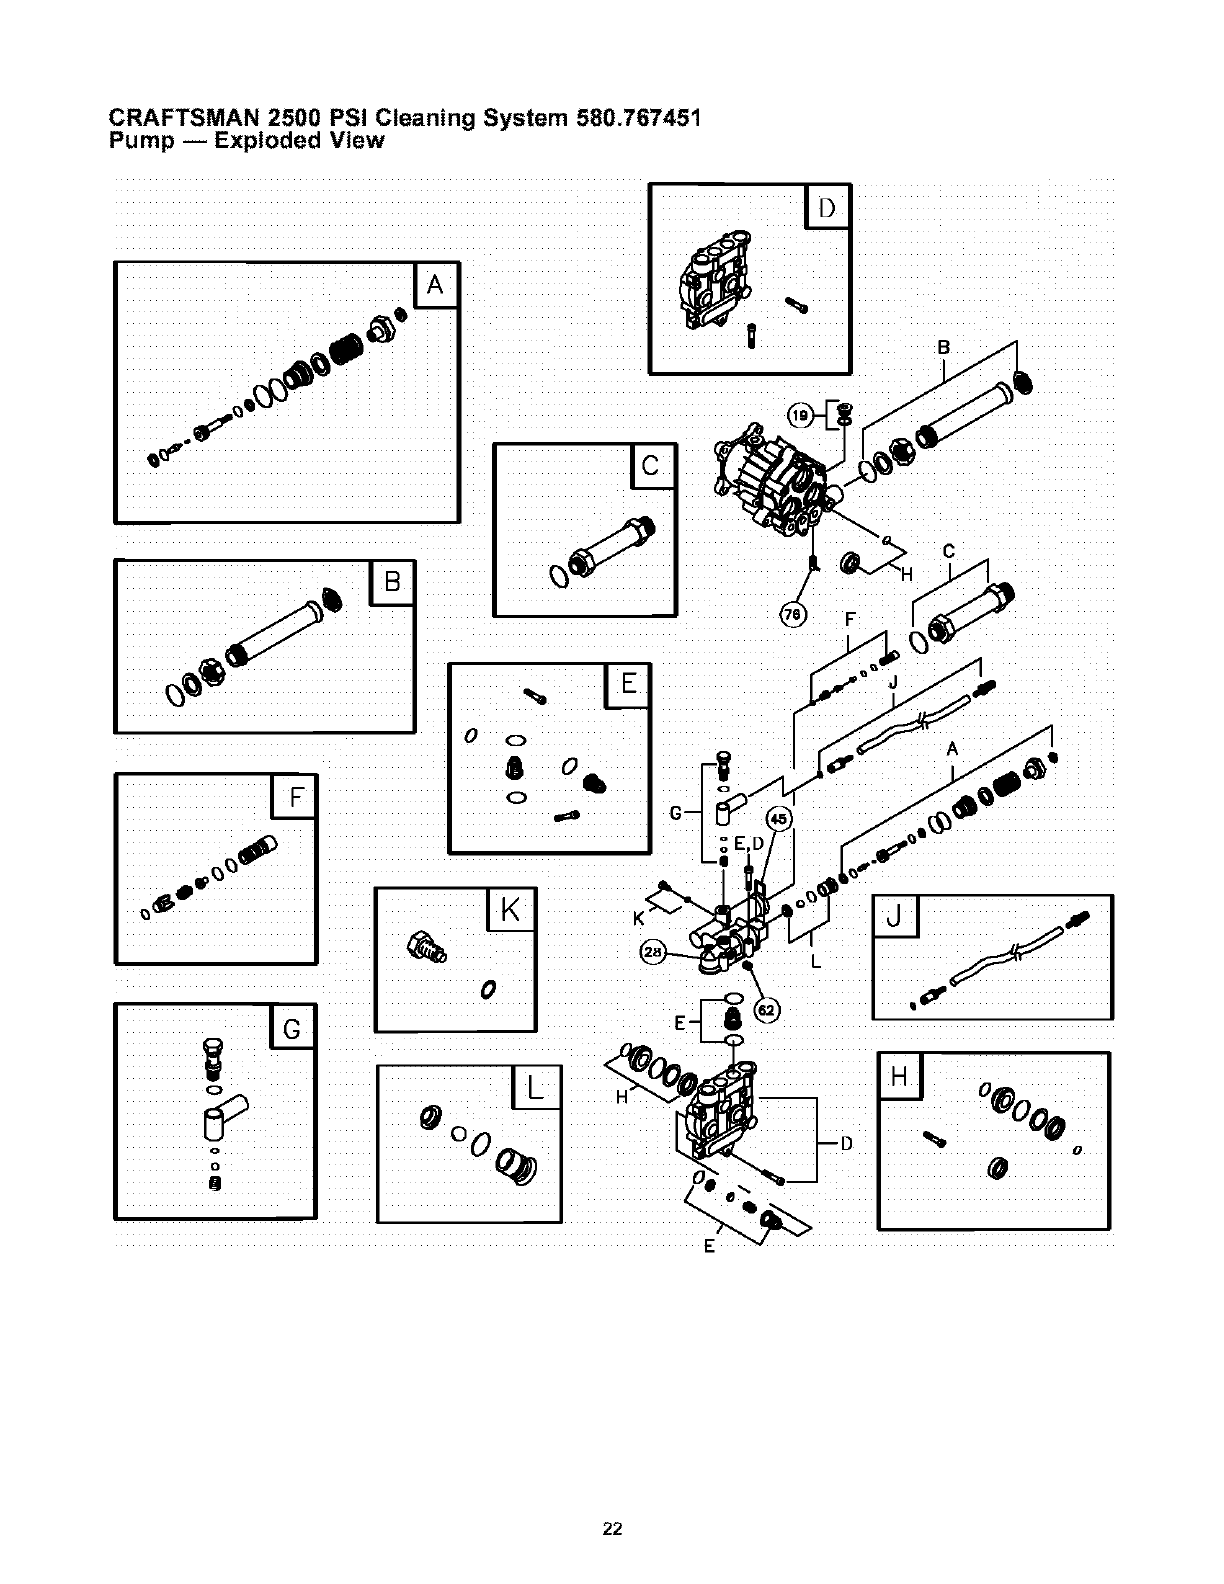 Page 22 of Craftsman Pressure Washer 580.767451 User Guide